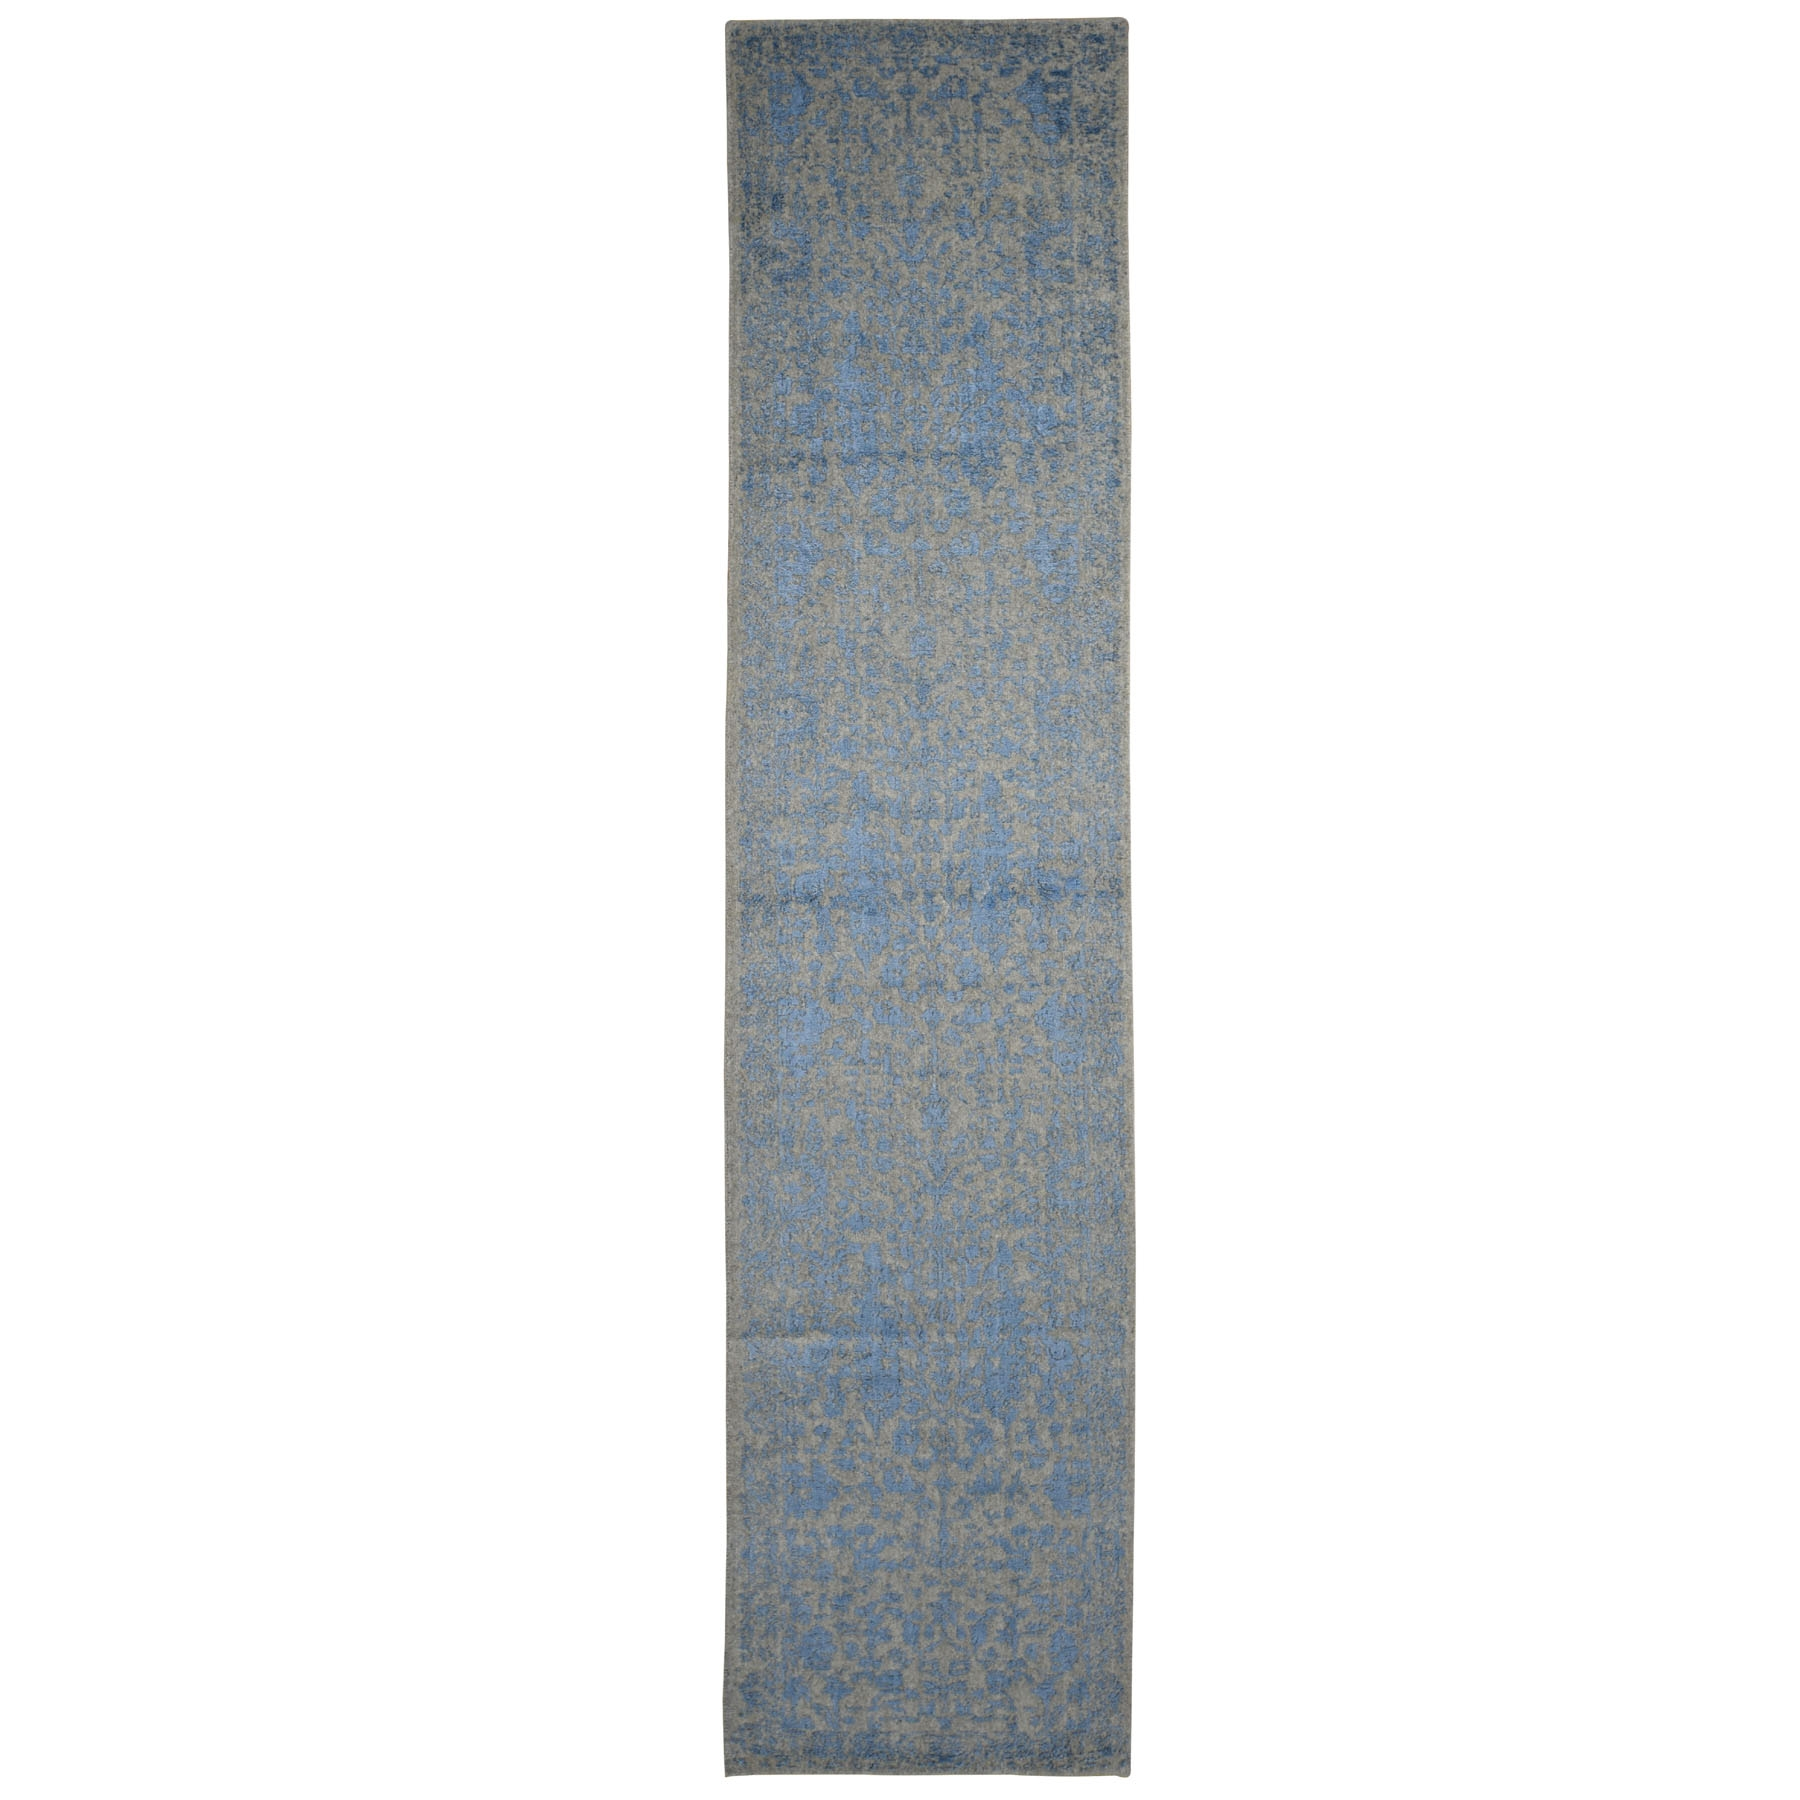 "2'6""x12'2"" Jacquard Hand Loomed Blue Broken Cypress Tree Design Silken Thick And Plush Runner Oriental Rug"